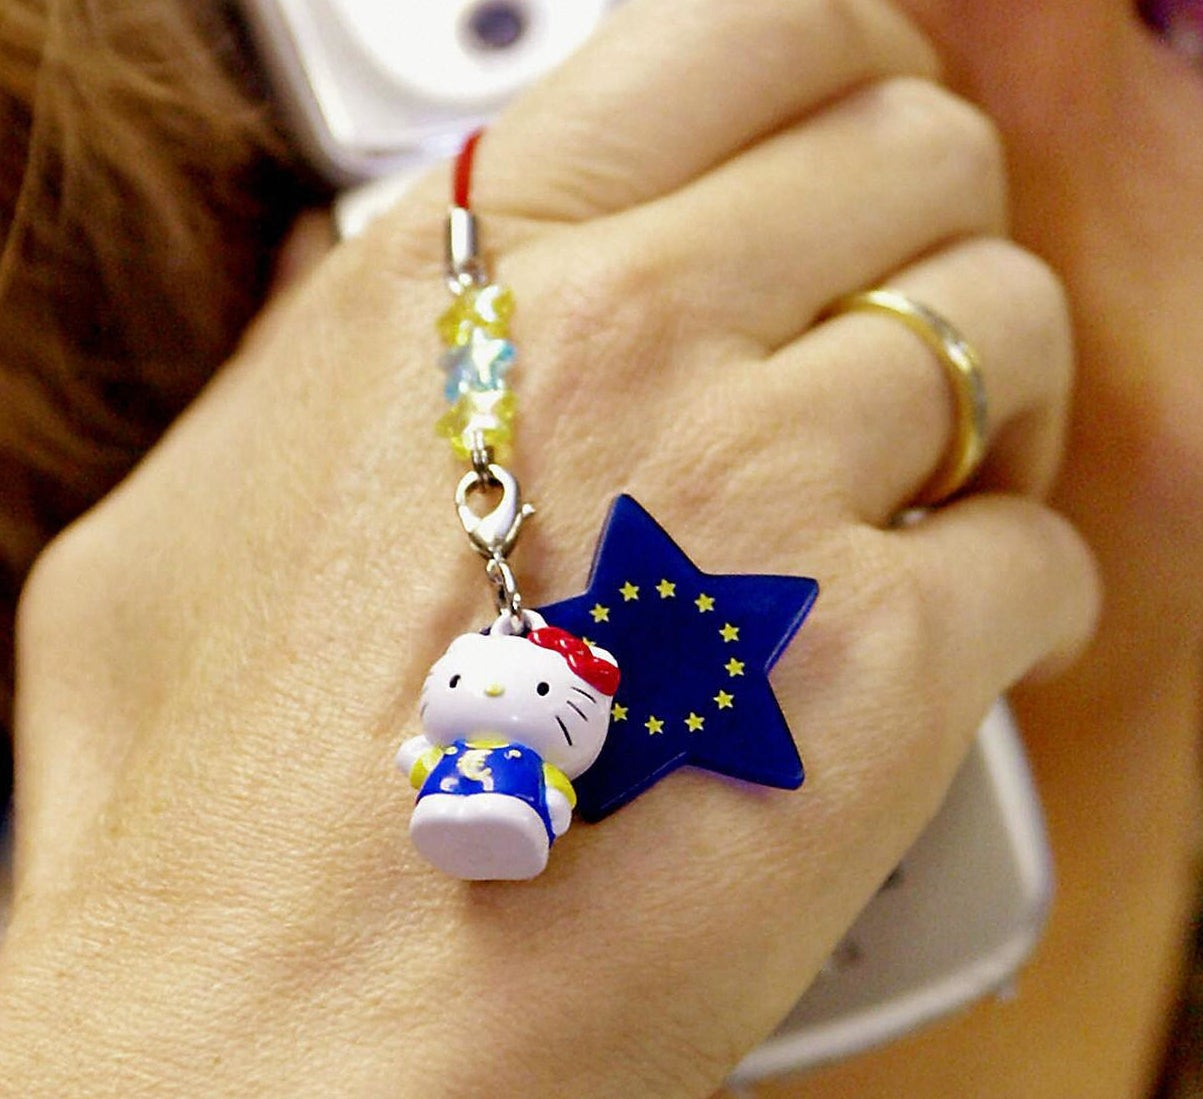 A photo of a handing holding a flip phone with Hello Kitty and E.U. charm on it